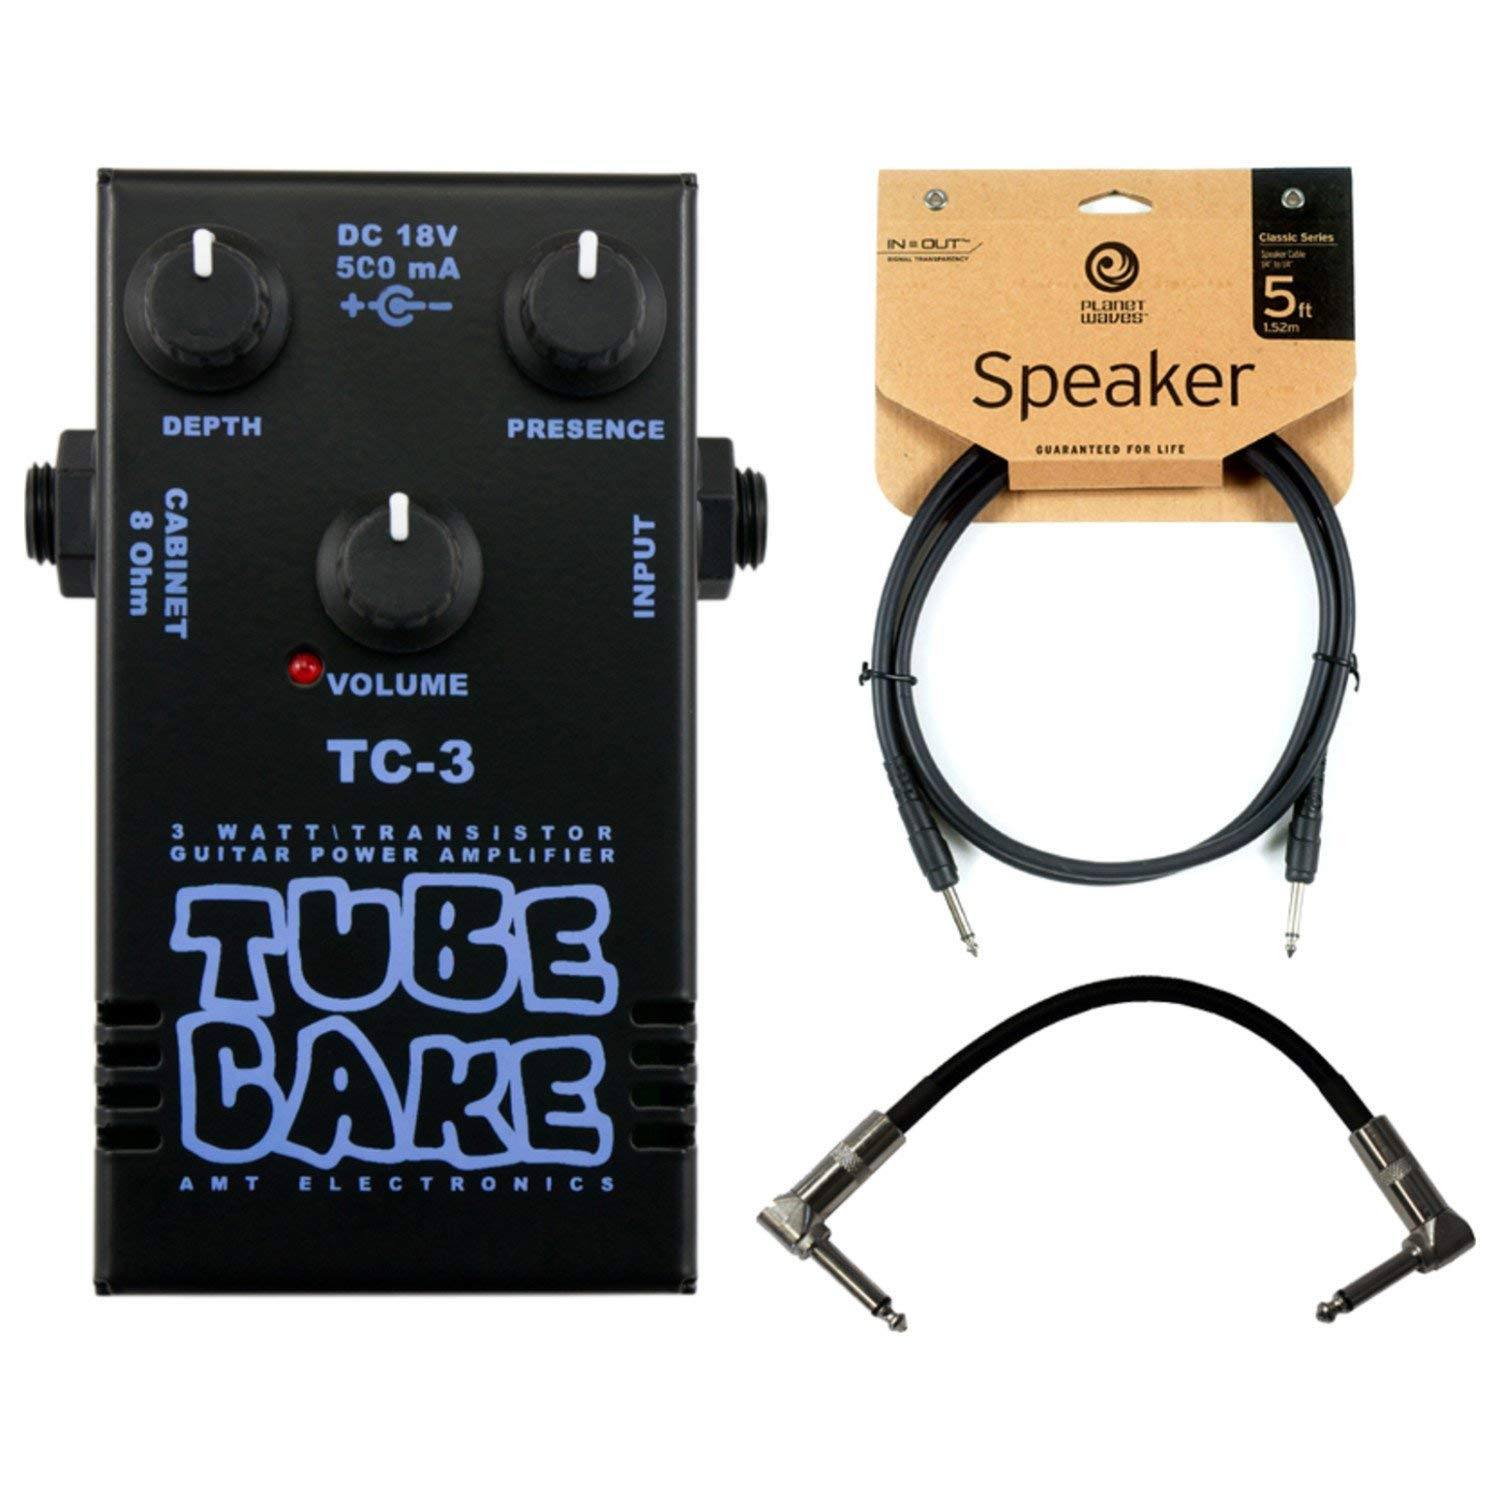 Cheap Power Amplifier Tube Find Deals On Line Details About Sub 150w Subwoofer Board Kit 2sa1943 2sc5200 Get Quotations Amt Electronics Cake 3 Watt Pedal W Patch Cable And Speake